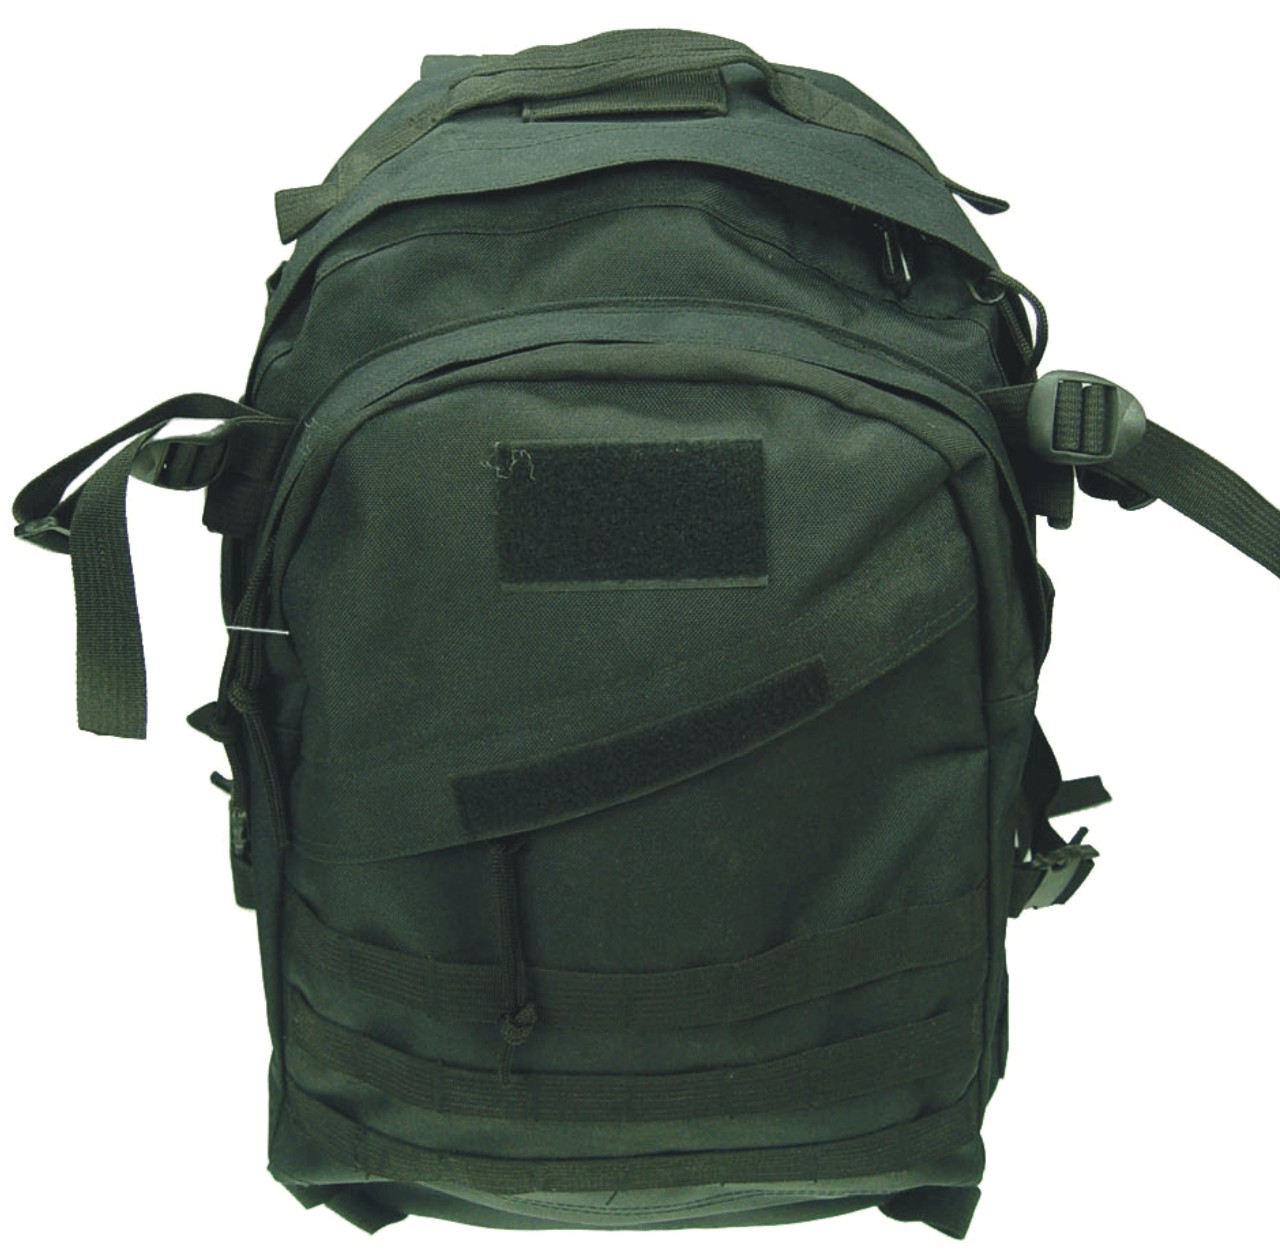 TG700 MOLLE 3-Day Assault Back Packs